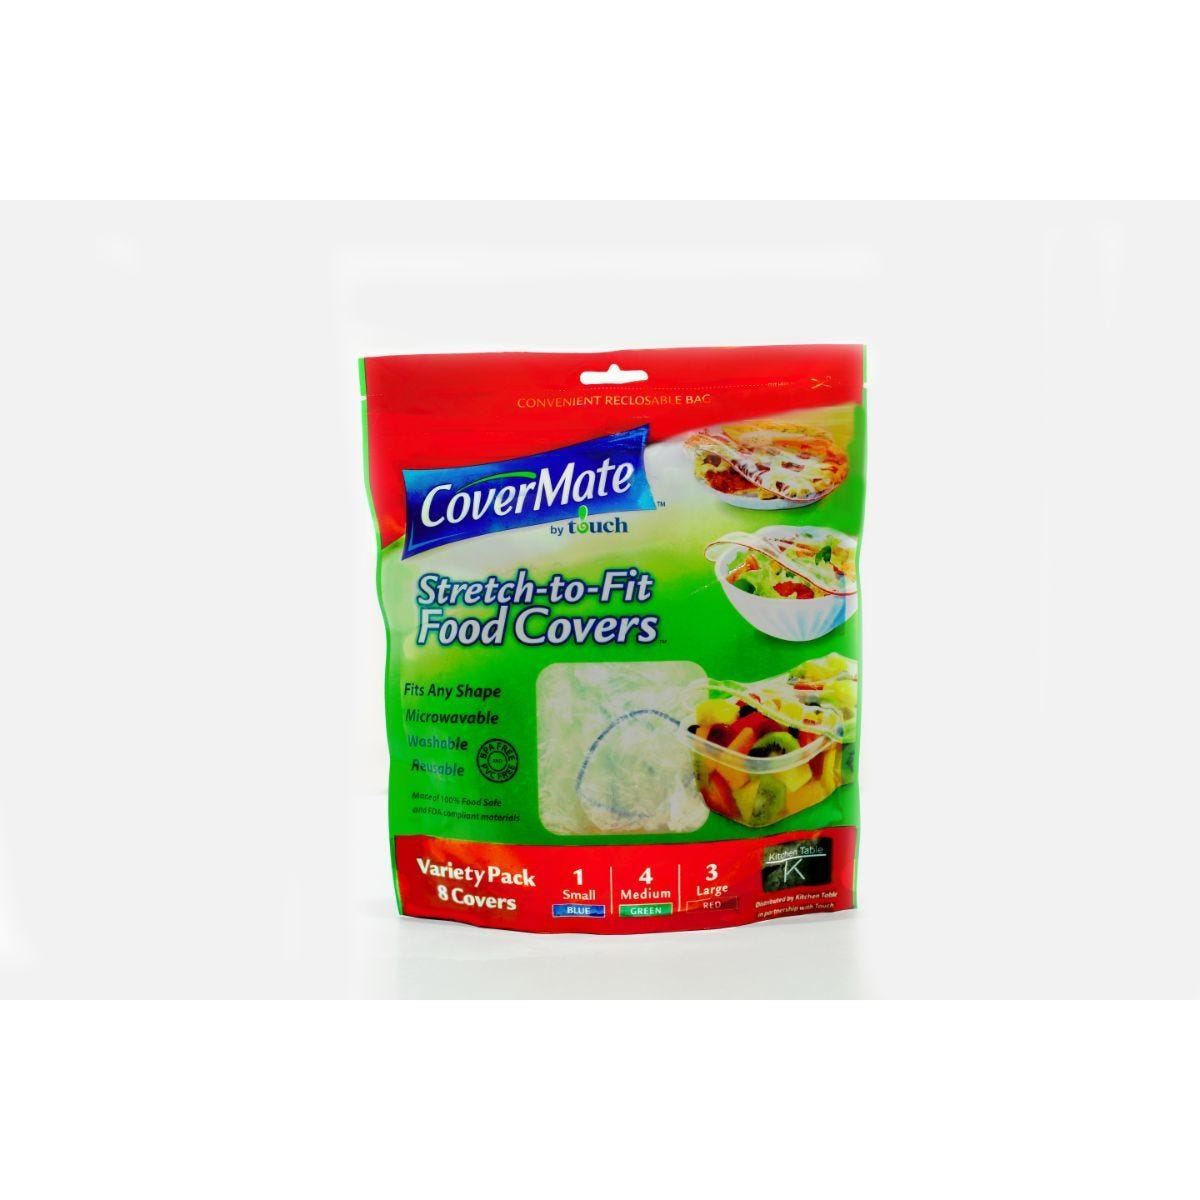 CoverMate Stretch-To-Fit Food Covers - Pack of 8